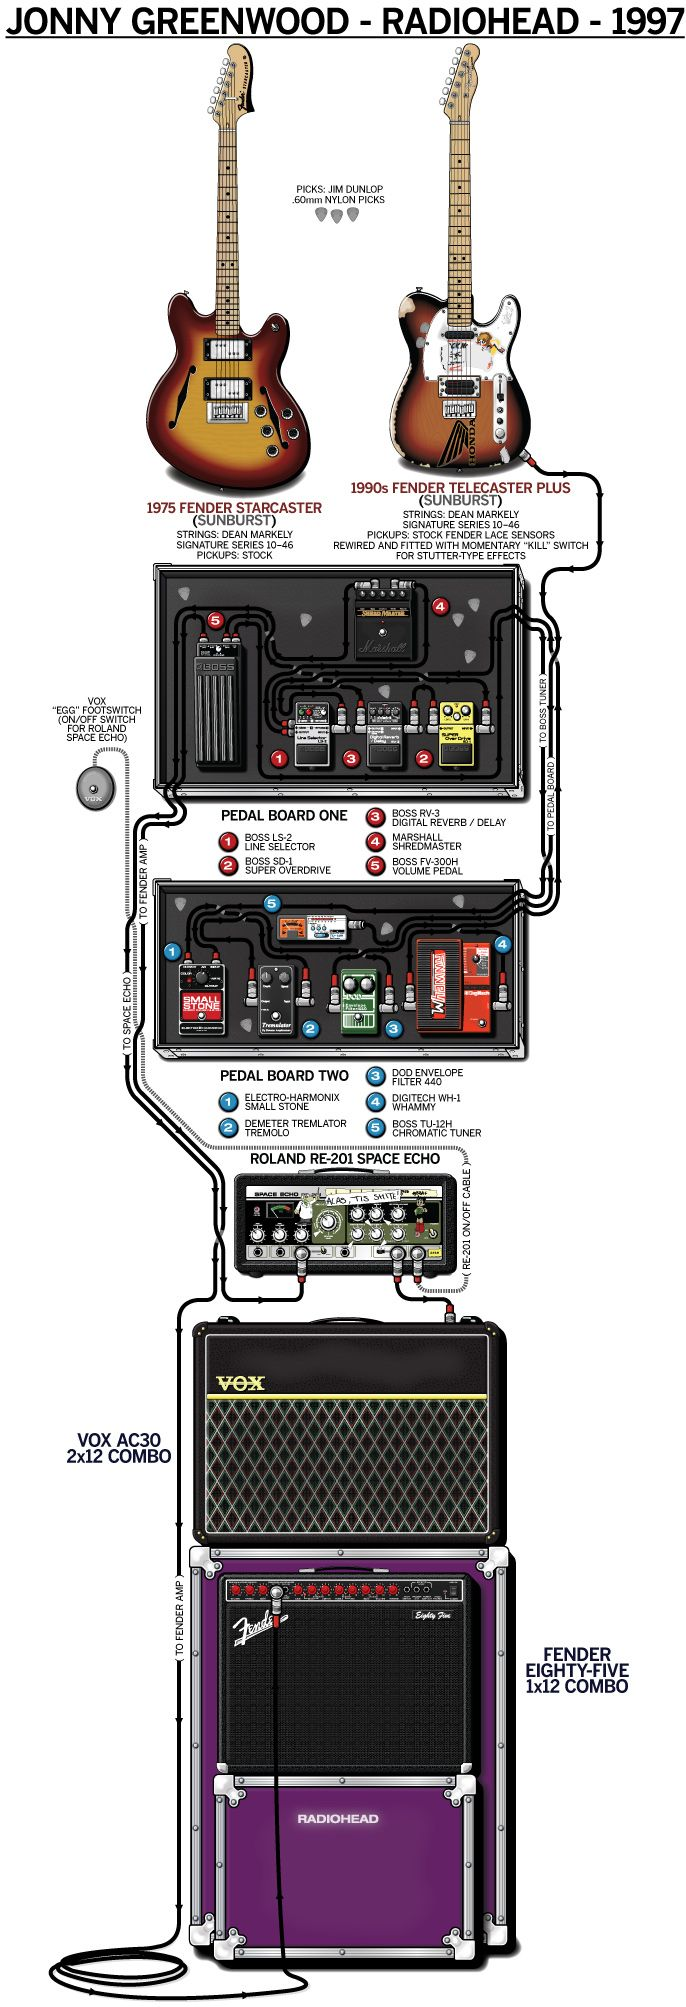 231c032cf720d94e4bbe4a68bf9c191a radiohead poster jonny greenwood 205 best pedalboard amps images on pinterest guitars, guitar pedalboard wiring diagram at n-0.co